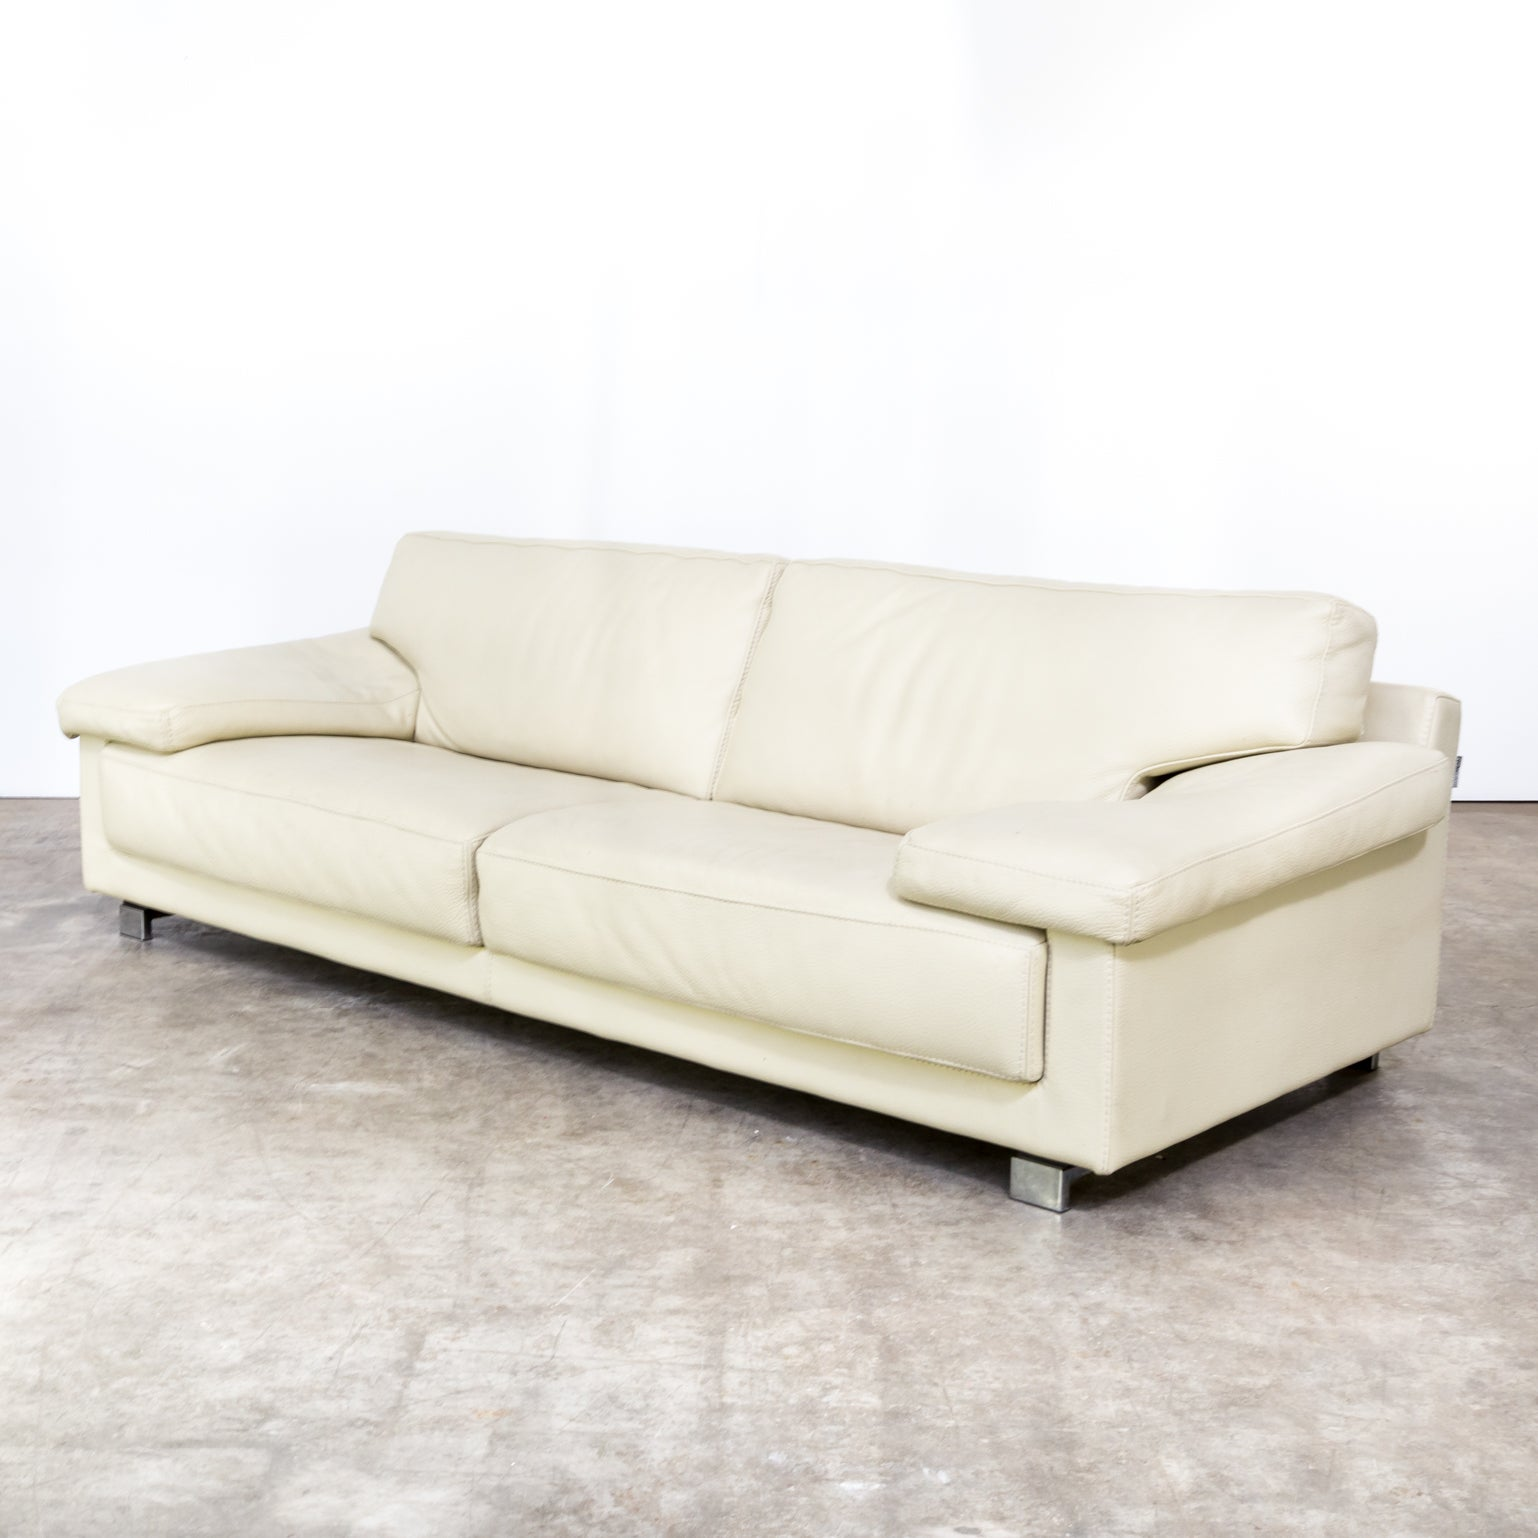 Bank Design Leer.Roche Bobois Leather Sofa For Sale At 1stdibs